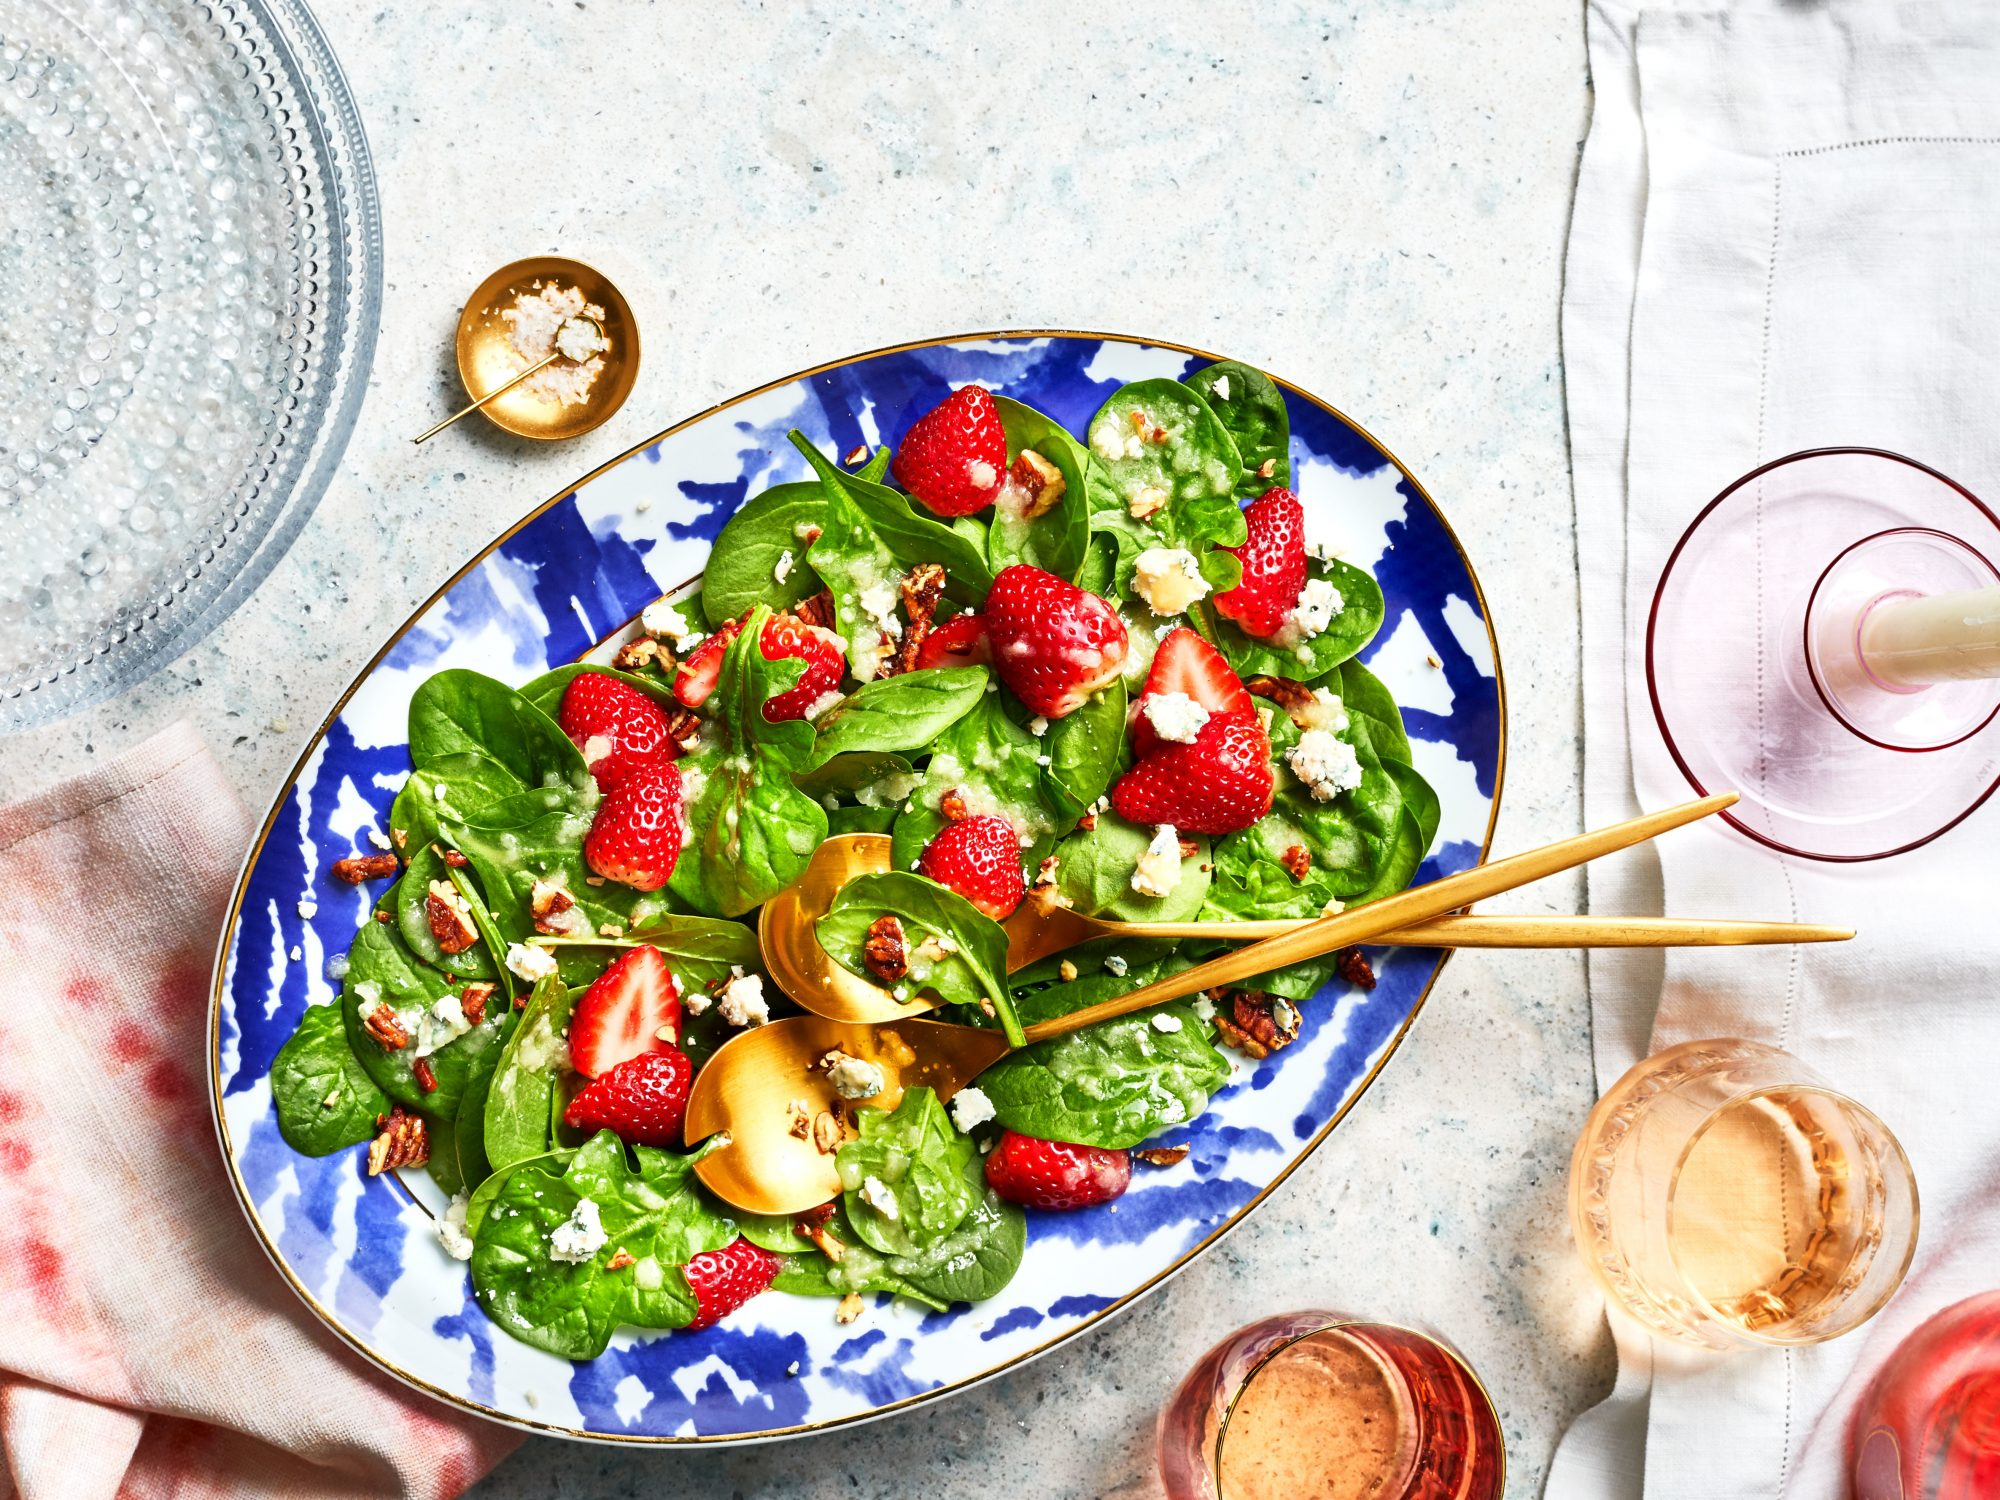 Strawberry-Spinach Salad with Sweet Vidalia Onion Dressing